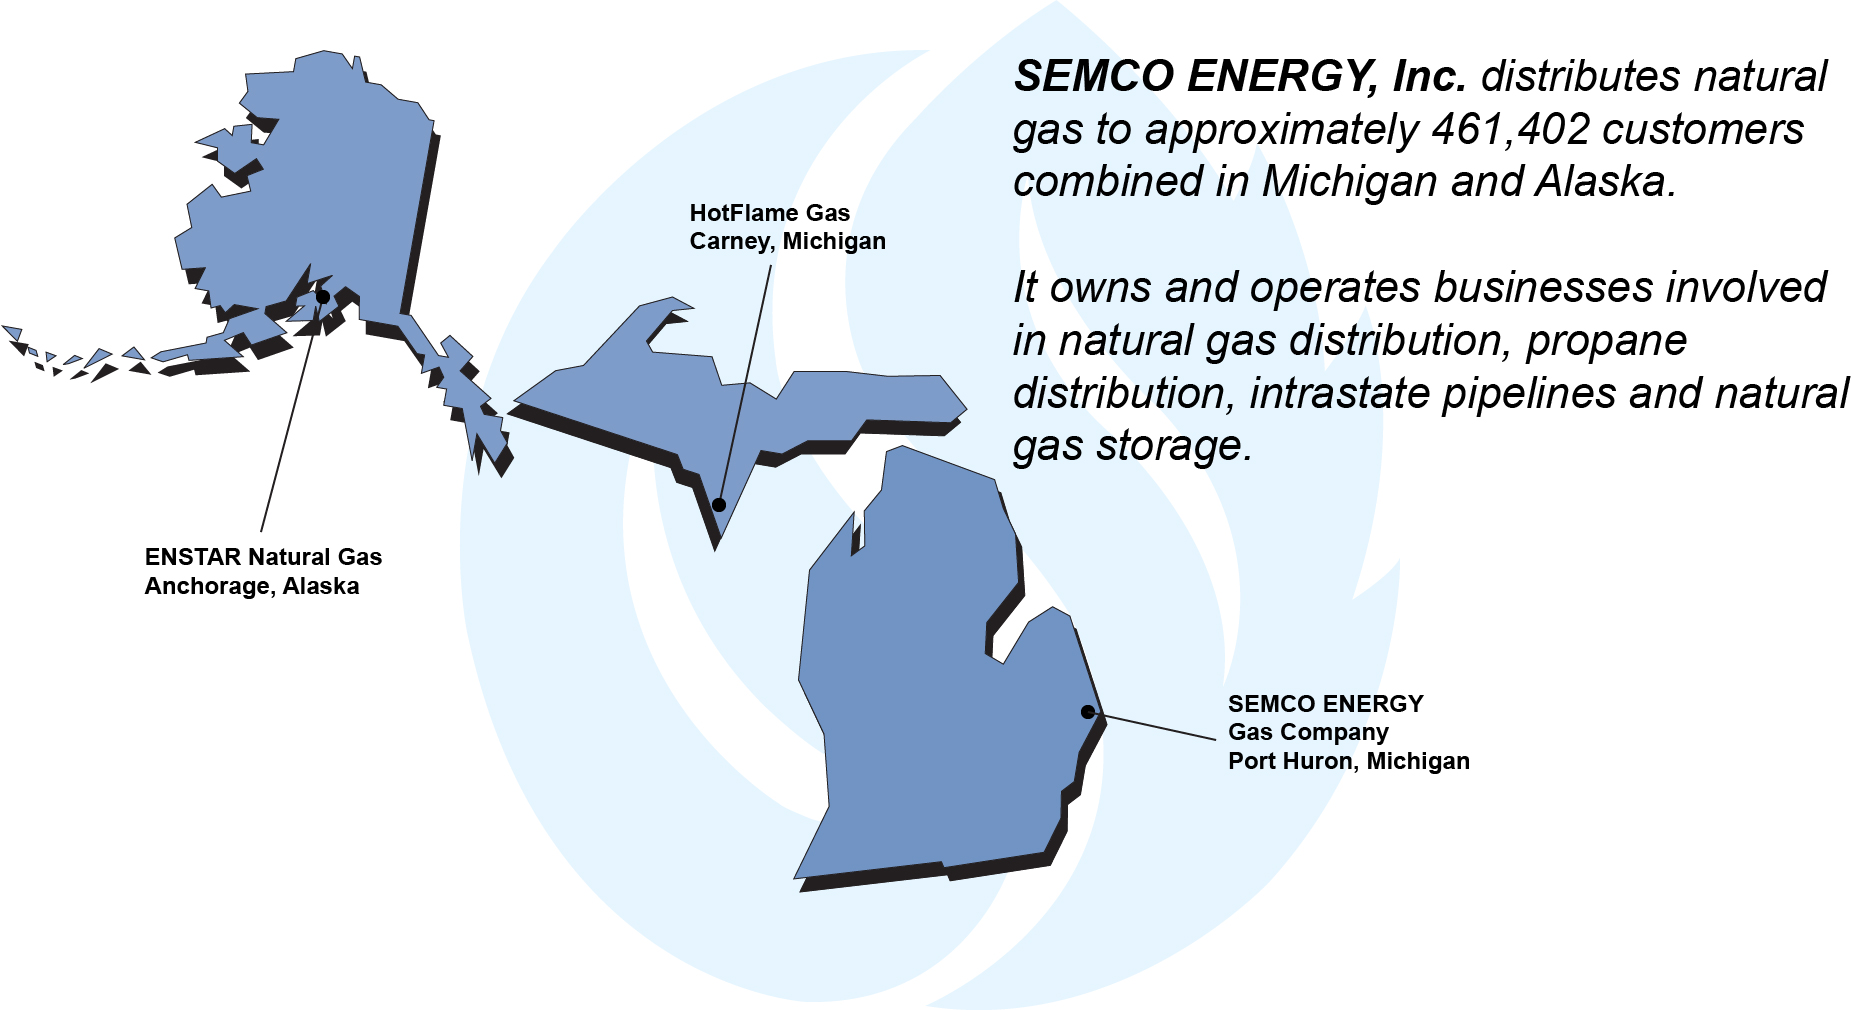 SEMCO ENERGY, Inc. distributes natural gas to approximately 461,402 customers combined in Michigan and Alaska. It owns and operates businesses involved in natural gas distribution, propane distribution, intrastate pipelines and natural gas storage.